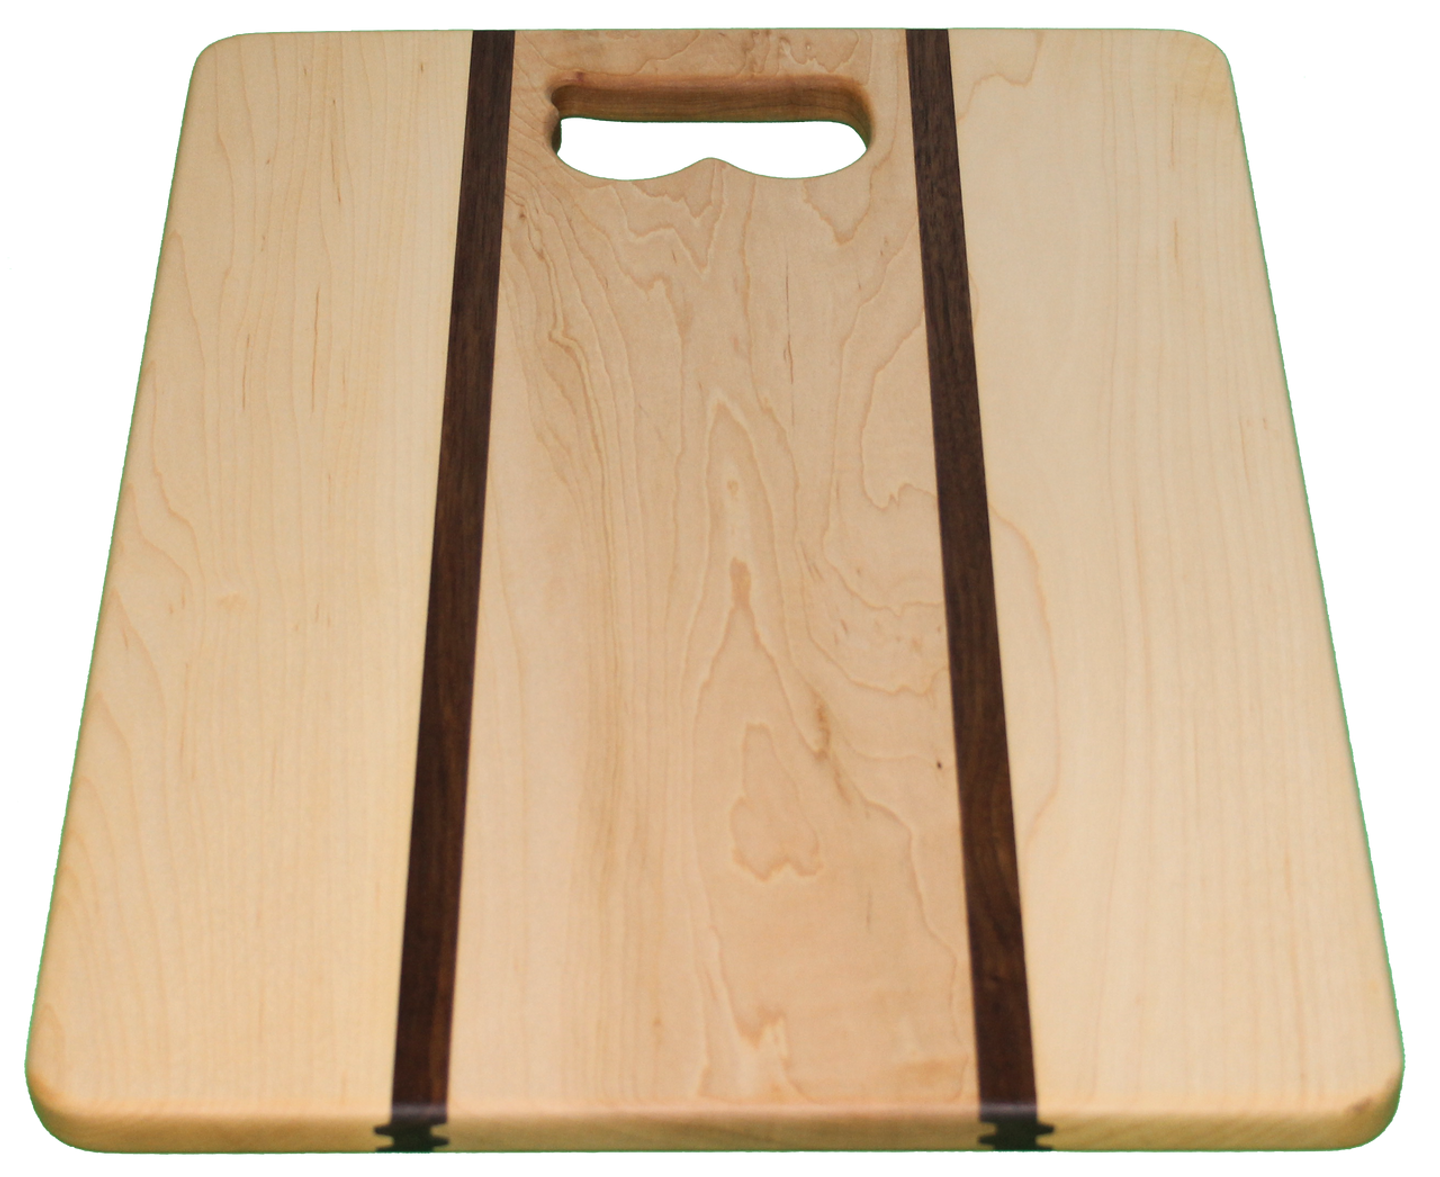 Deluxe Cutting Board - Beginner's Cut